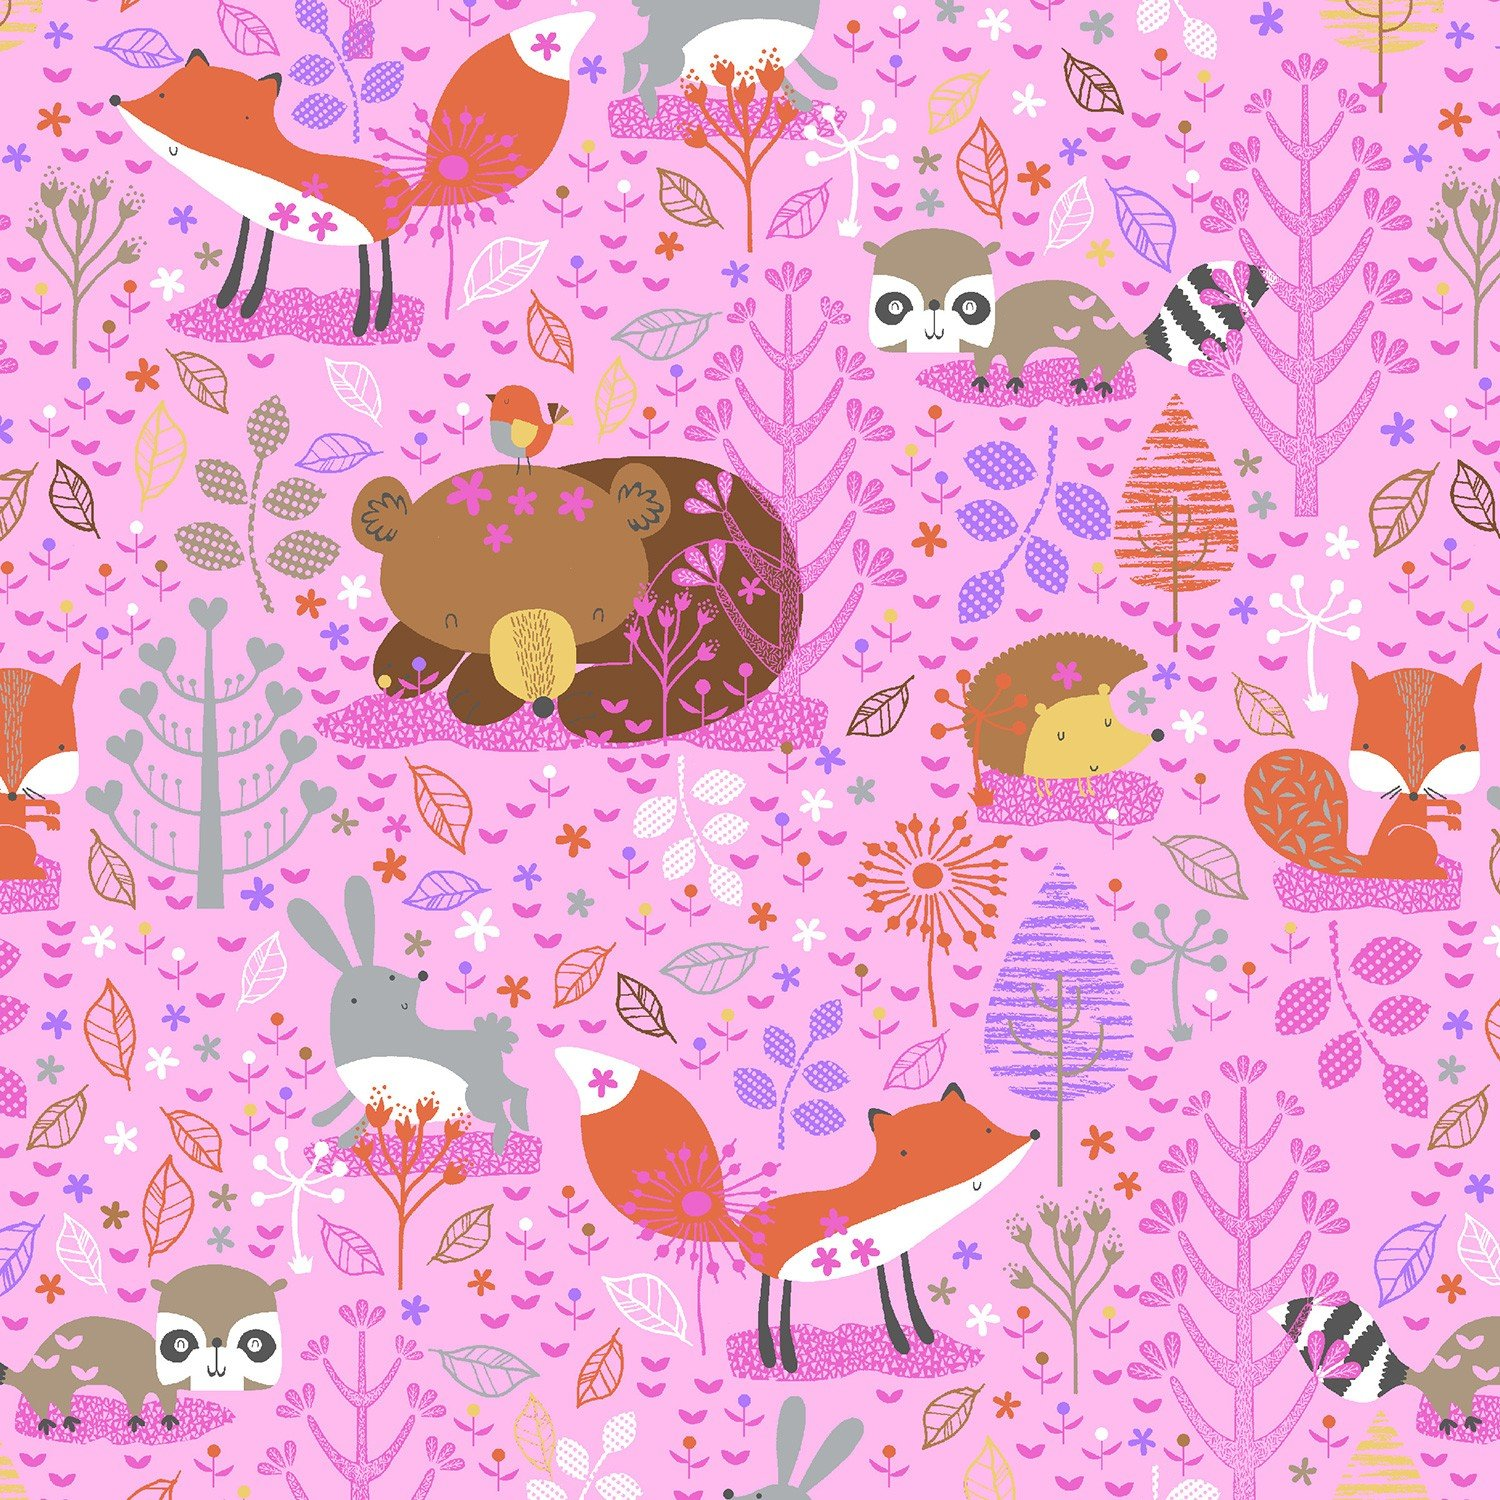 AE-Comfy Flannel Print 0909-22 Pink Forest Animals